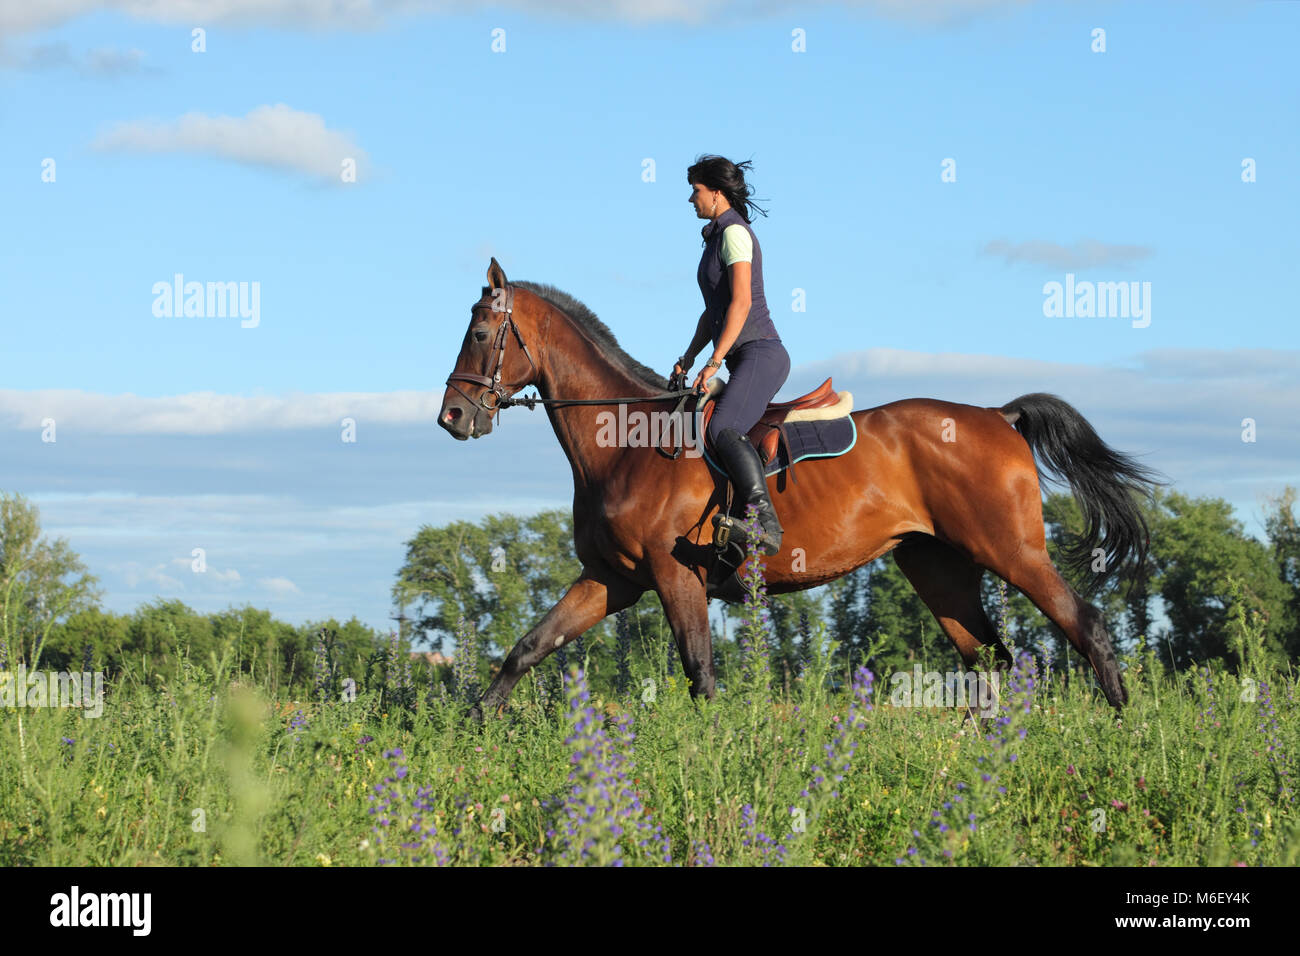 Galloping horse with female rider - Stock Image